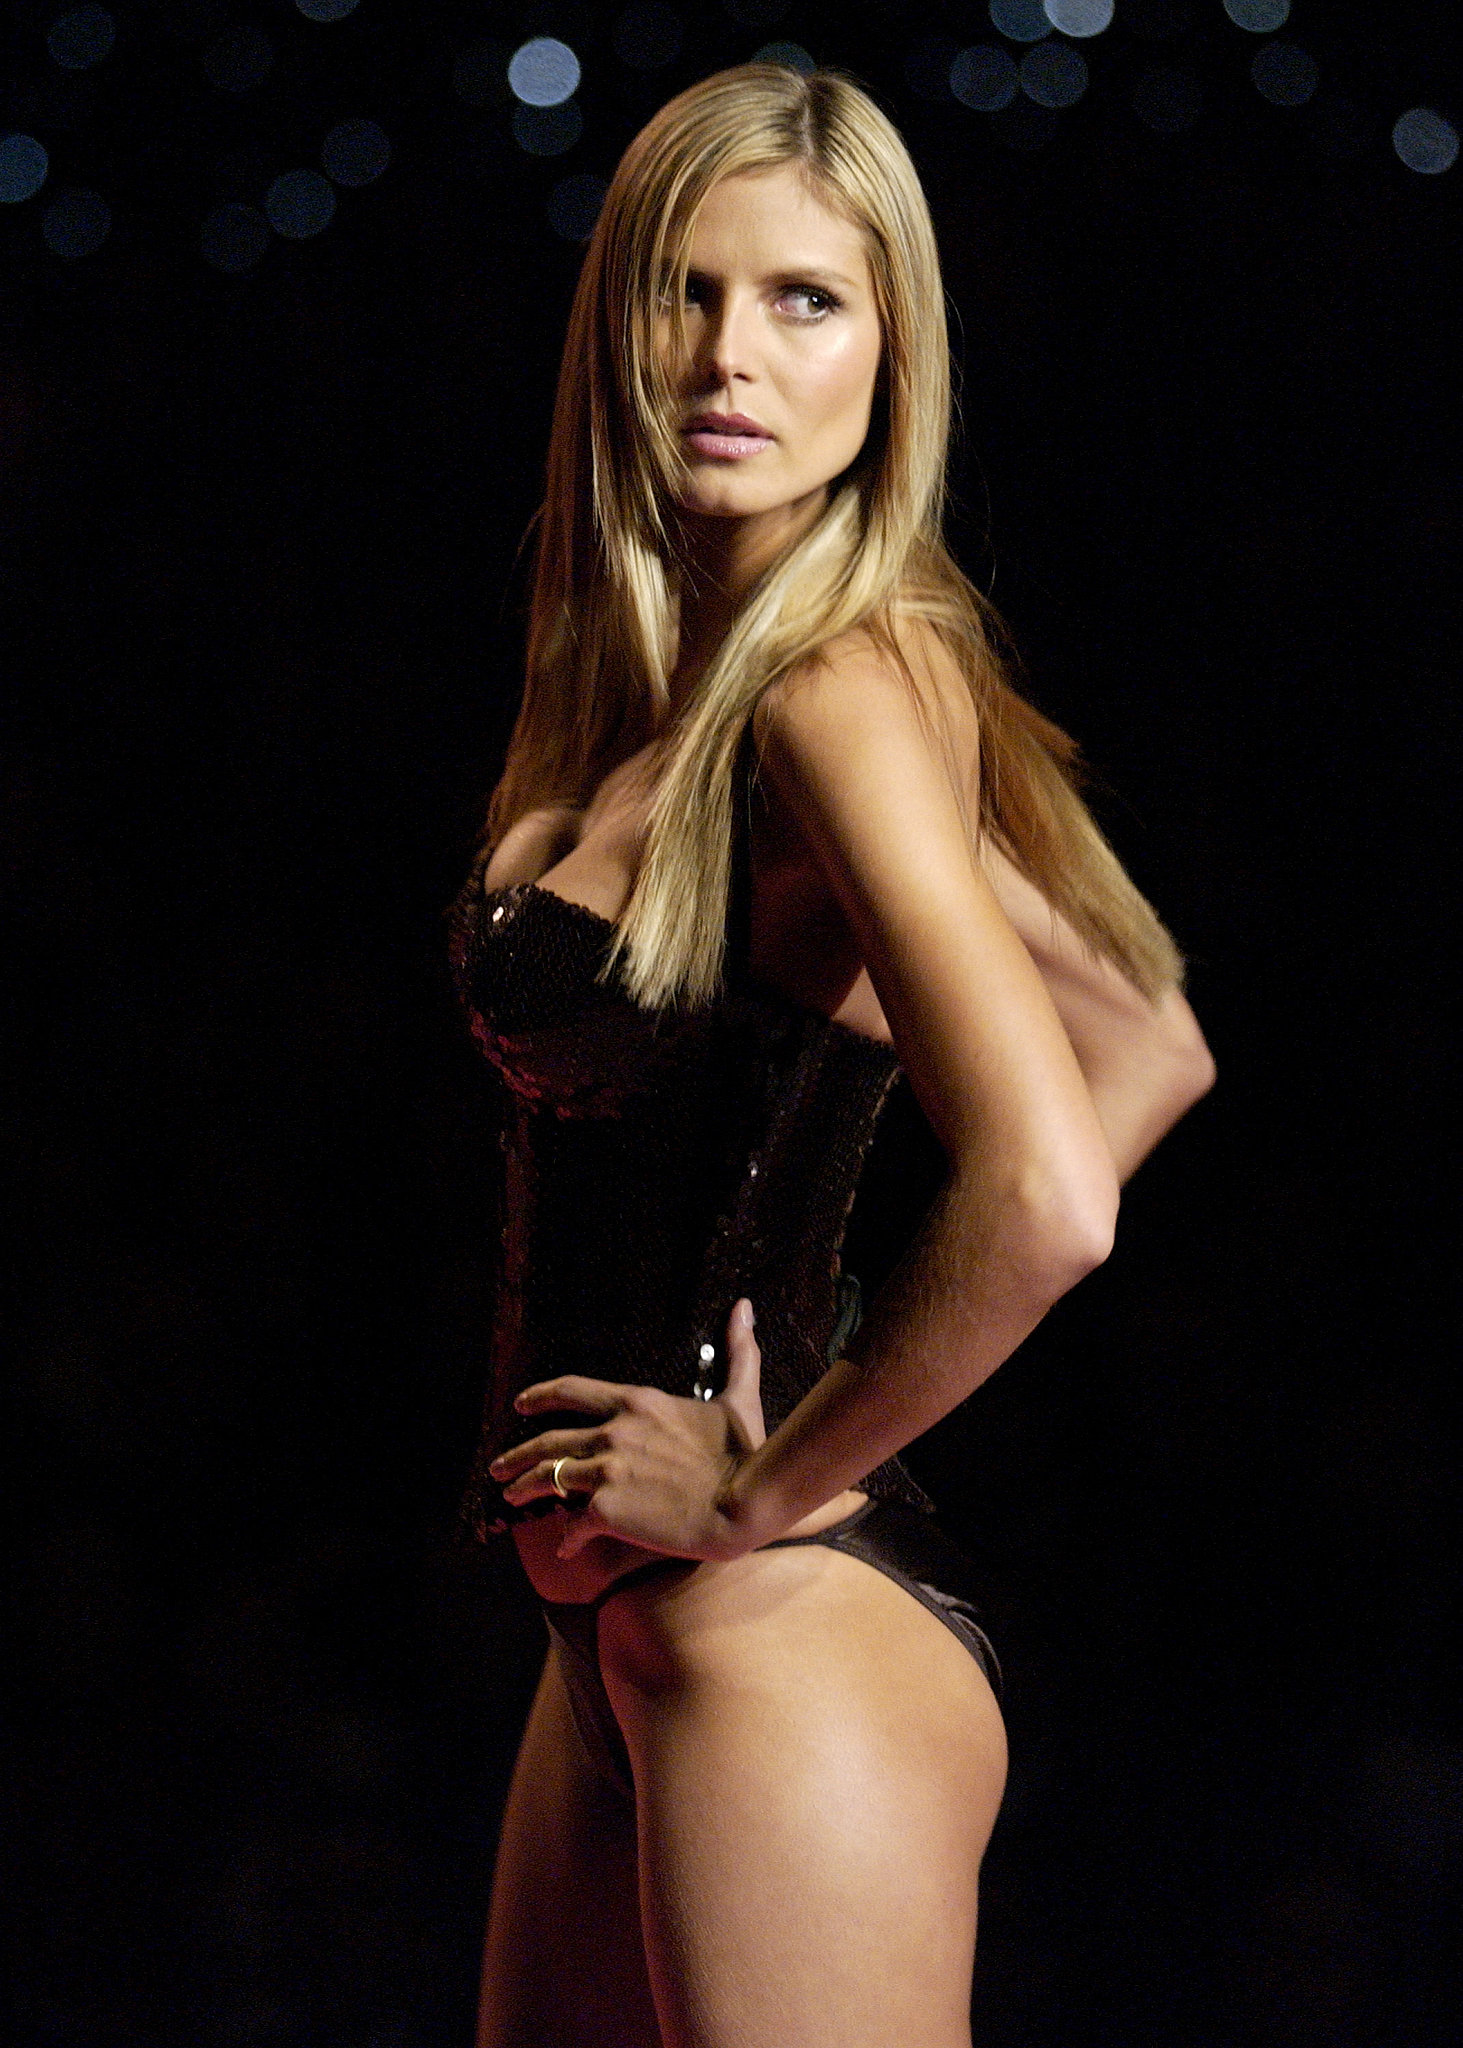 Heidi Klum flaunted her physique on the runway in 2001.